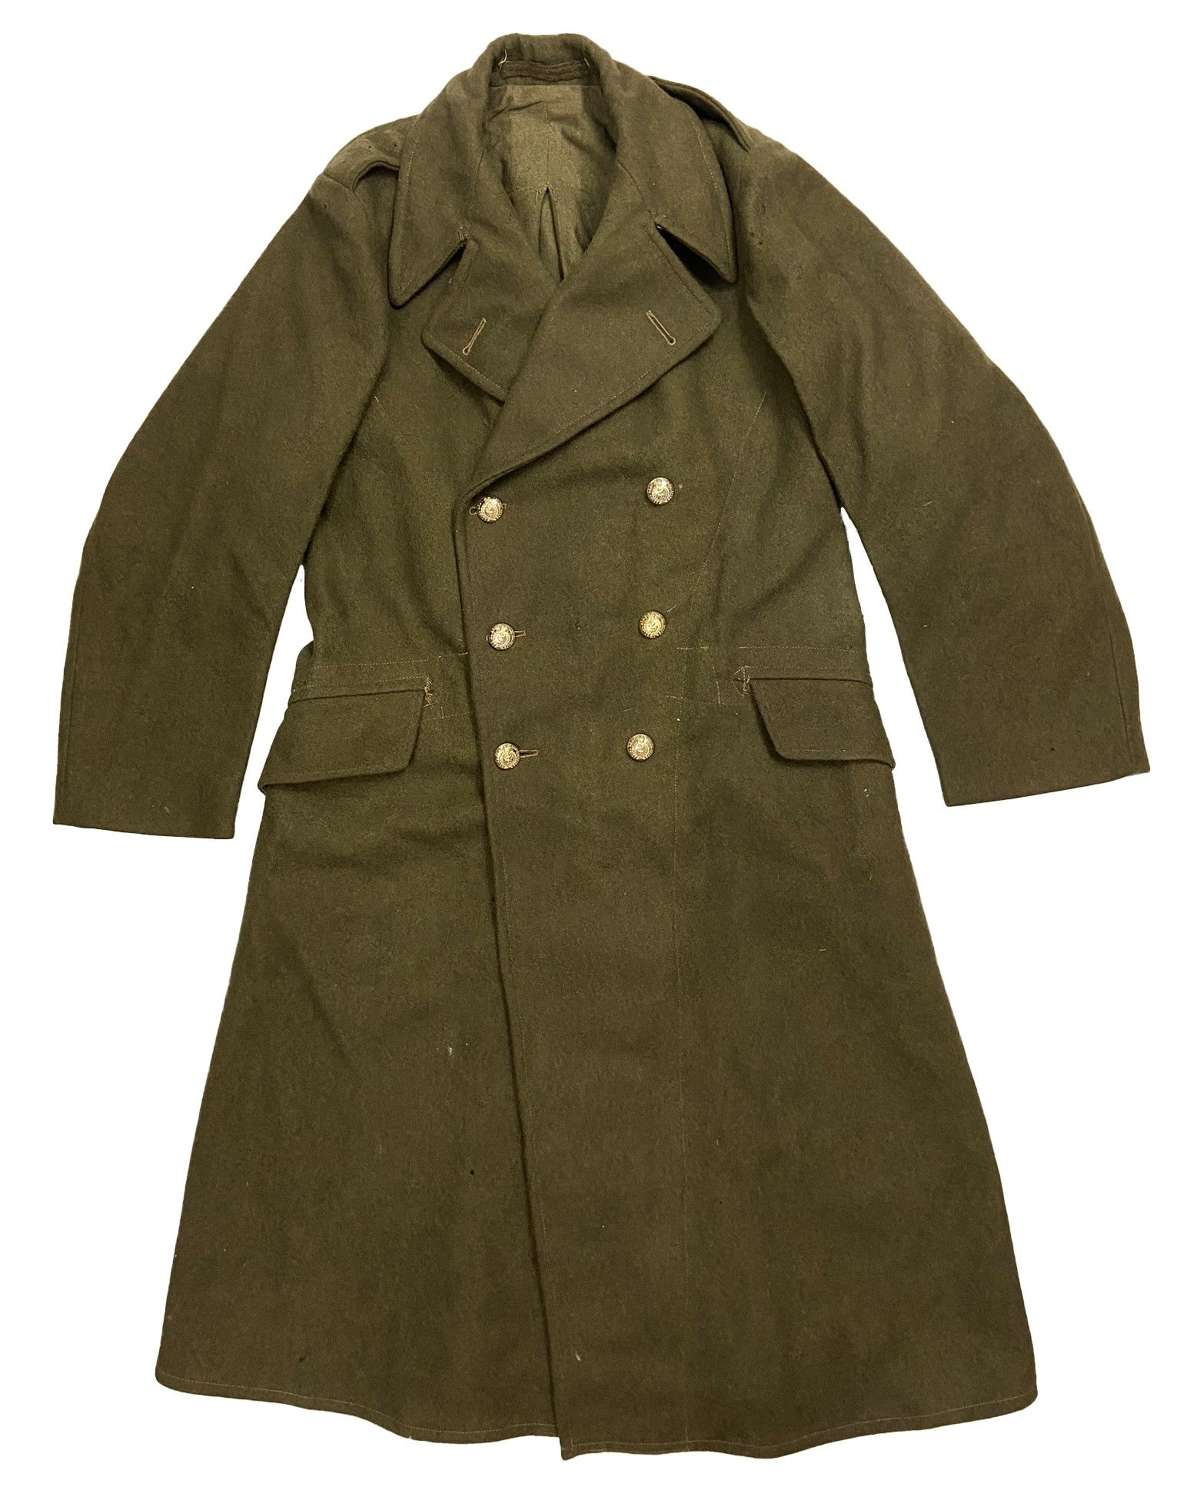 Original 1951 Dated 1940 Pattern Dismounted Greatcoat - Large size 10